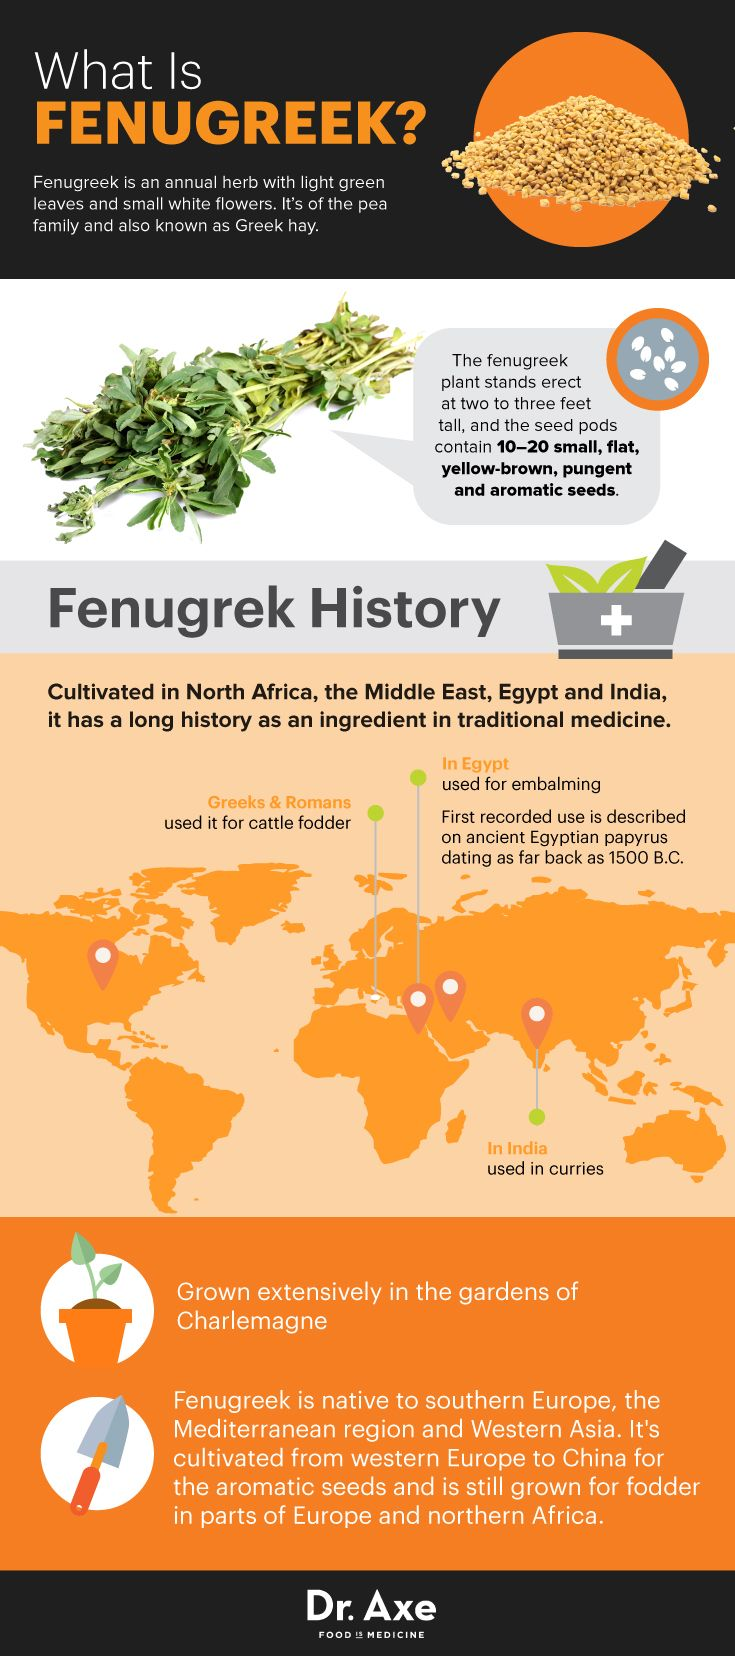 Fenugreek history - Dr. Axe http://www.draxe.com #health #holistic #natural